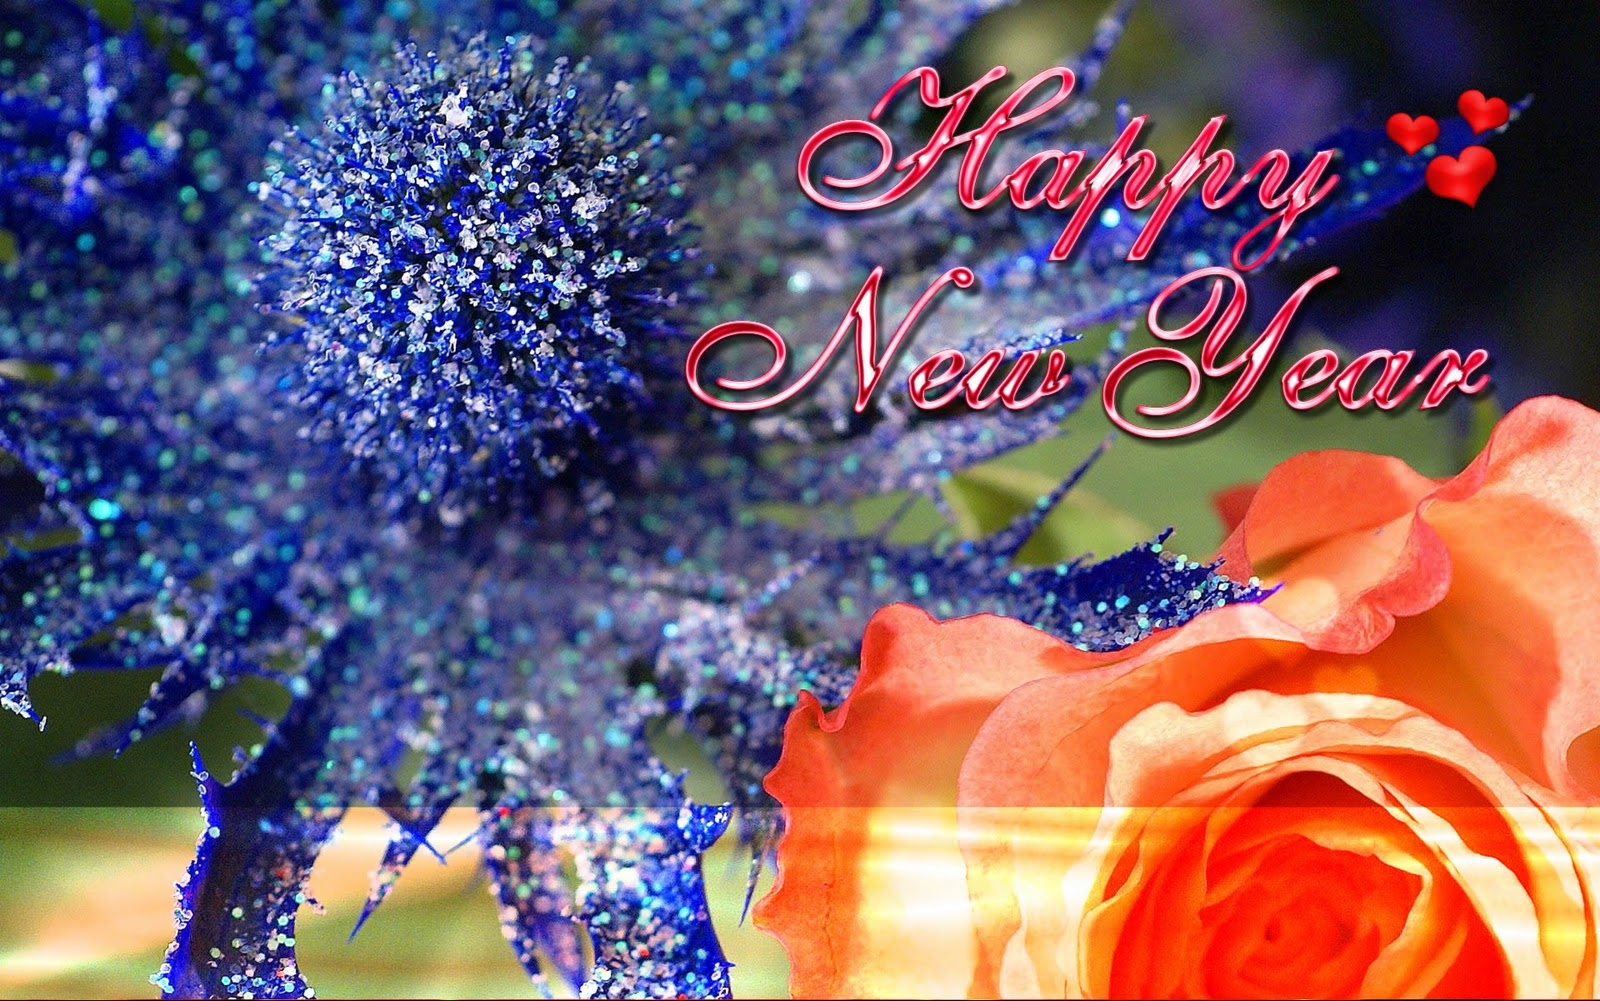 http://2.bp.blogspot.com/-Kl9mJIYI-GA/UKxux6bMR_I/AAAAAAAACAk/Q45dgFL0zfU/s1600/free-happy-new-year-2013-best-wishes-most-beautiful-greetings-photo-cards-wallpapers-014.jpg